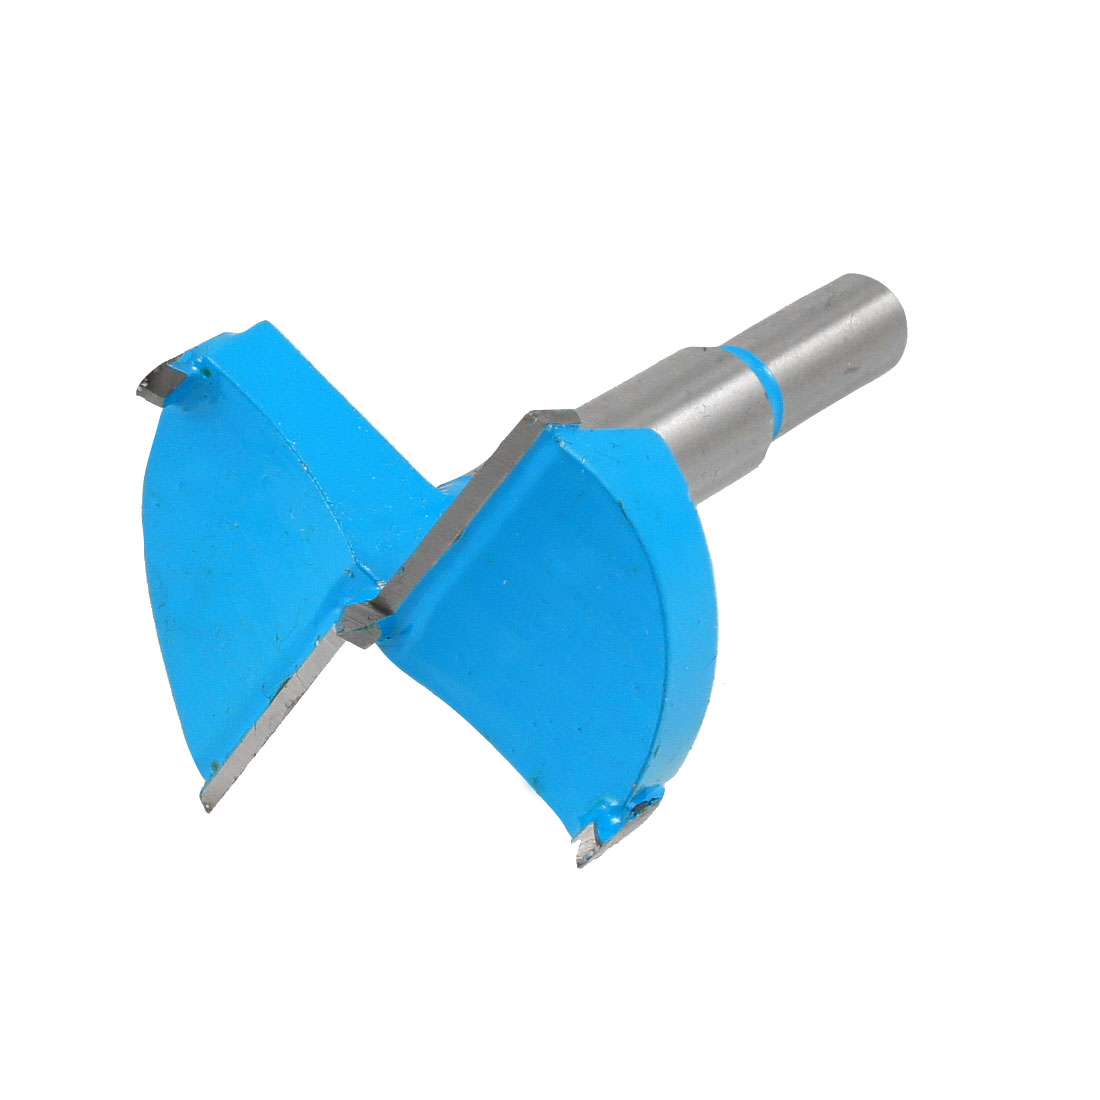 Woodworking 50mm Diameter Cutter Cutting Hinge Boring Drill Bit